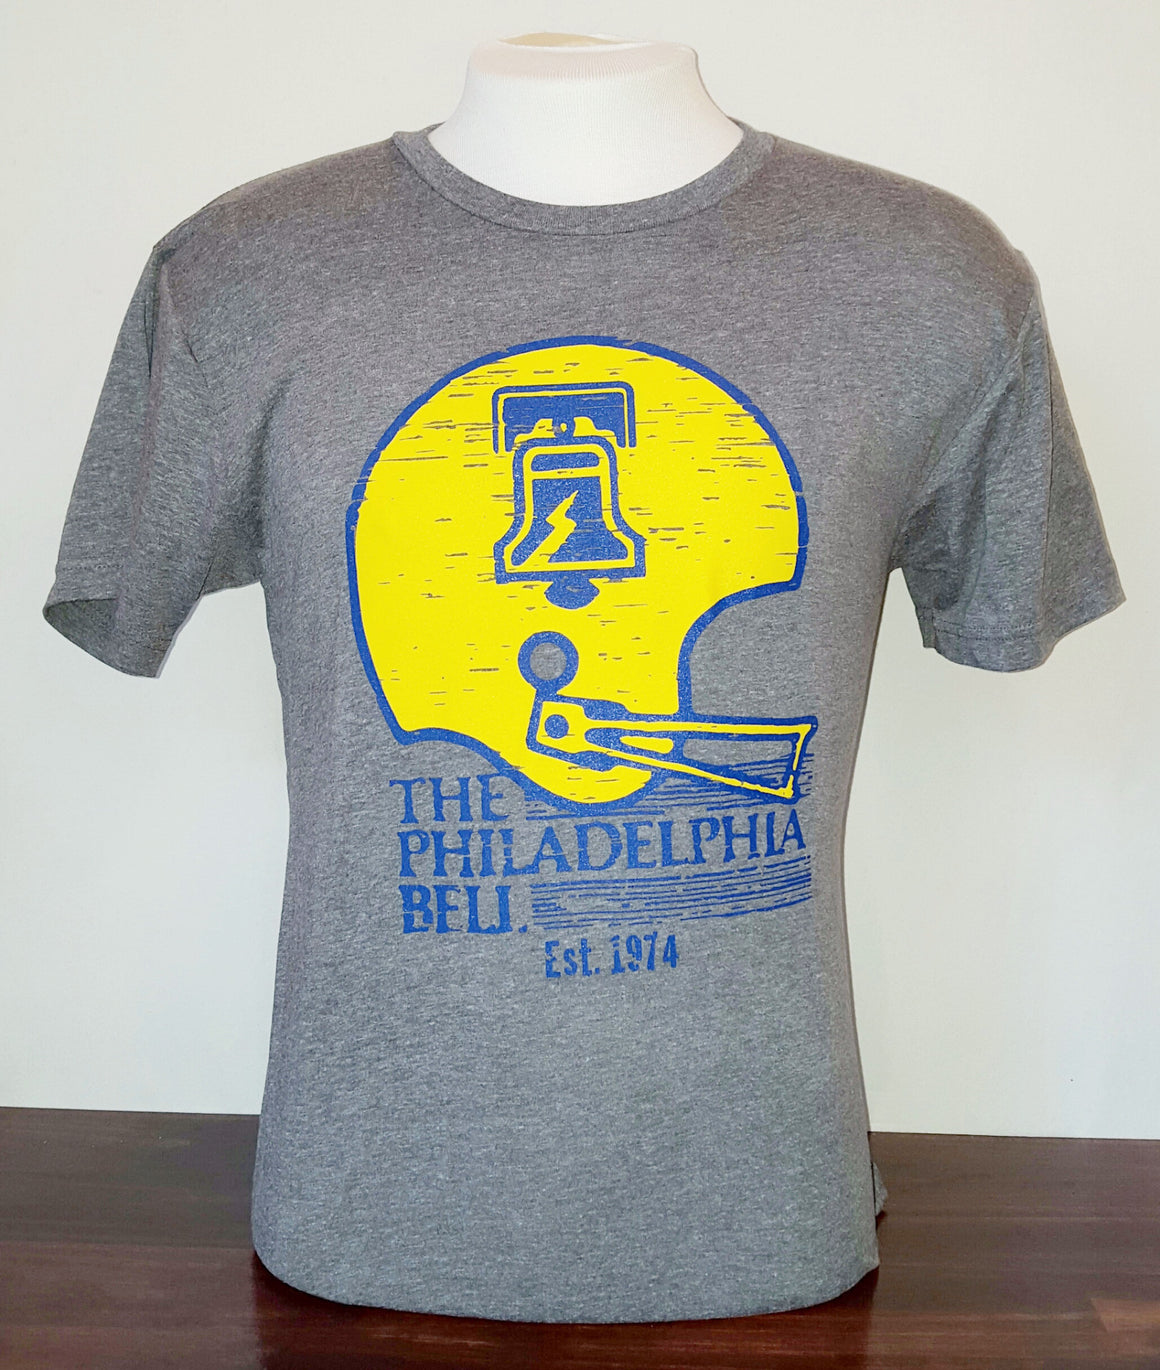 Philadelphia Bell Football Shirt